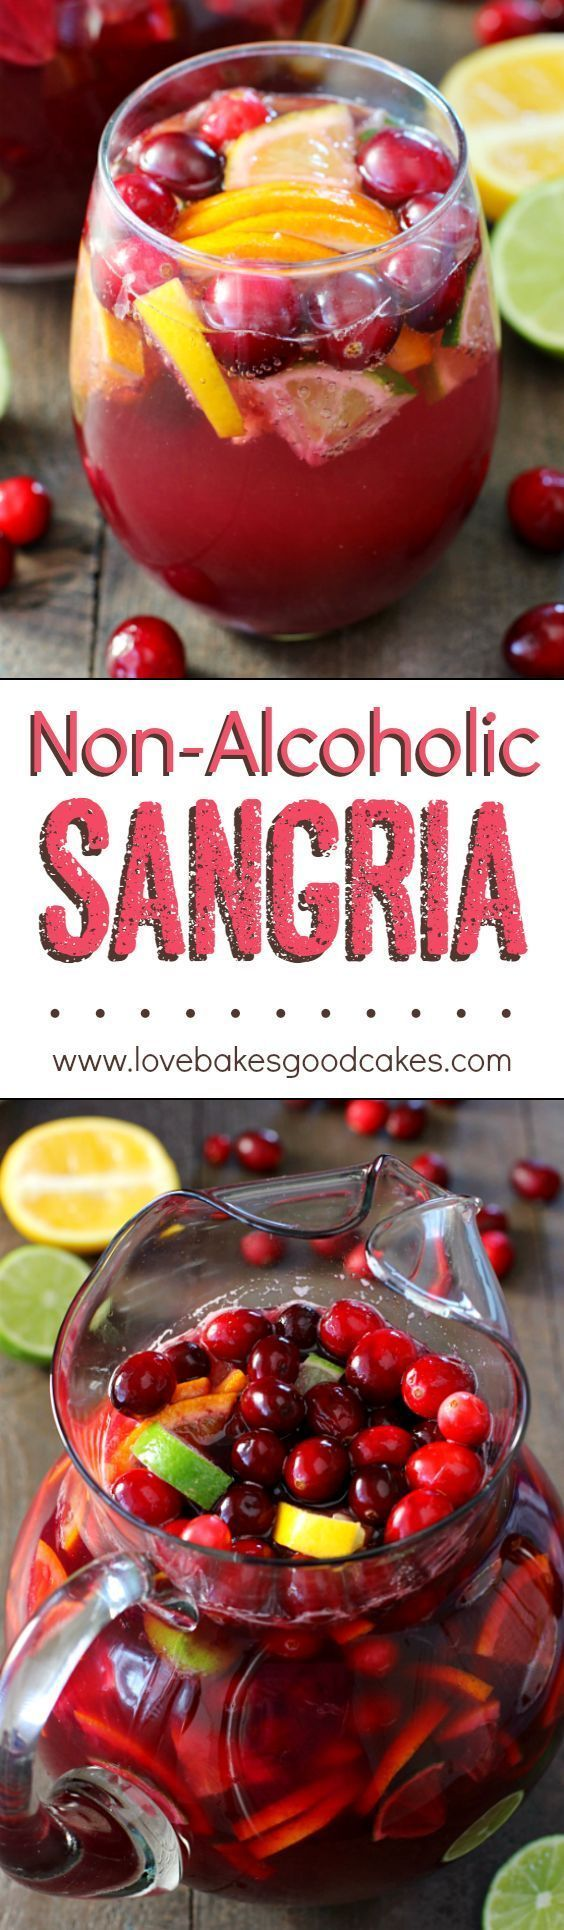 169 best Recipes: Non-Alcoholic Drinks images on Pinterest